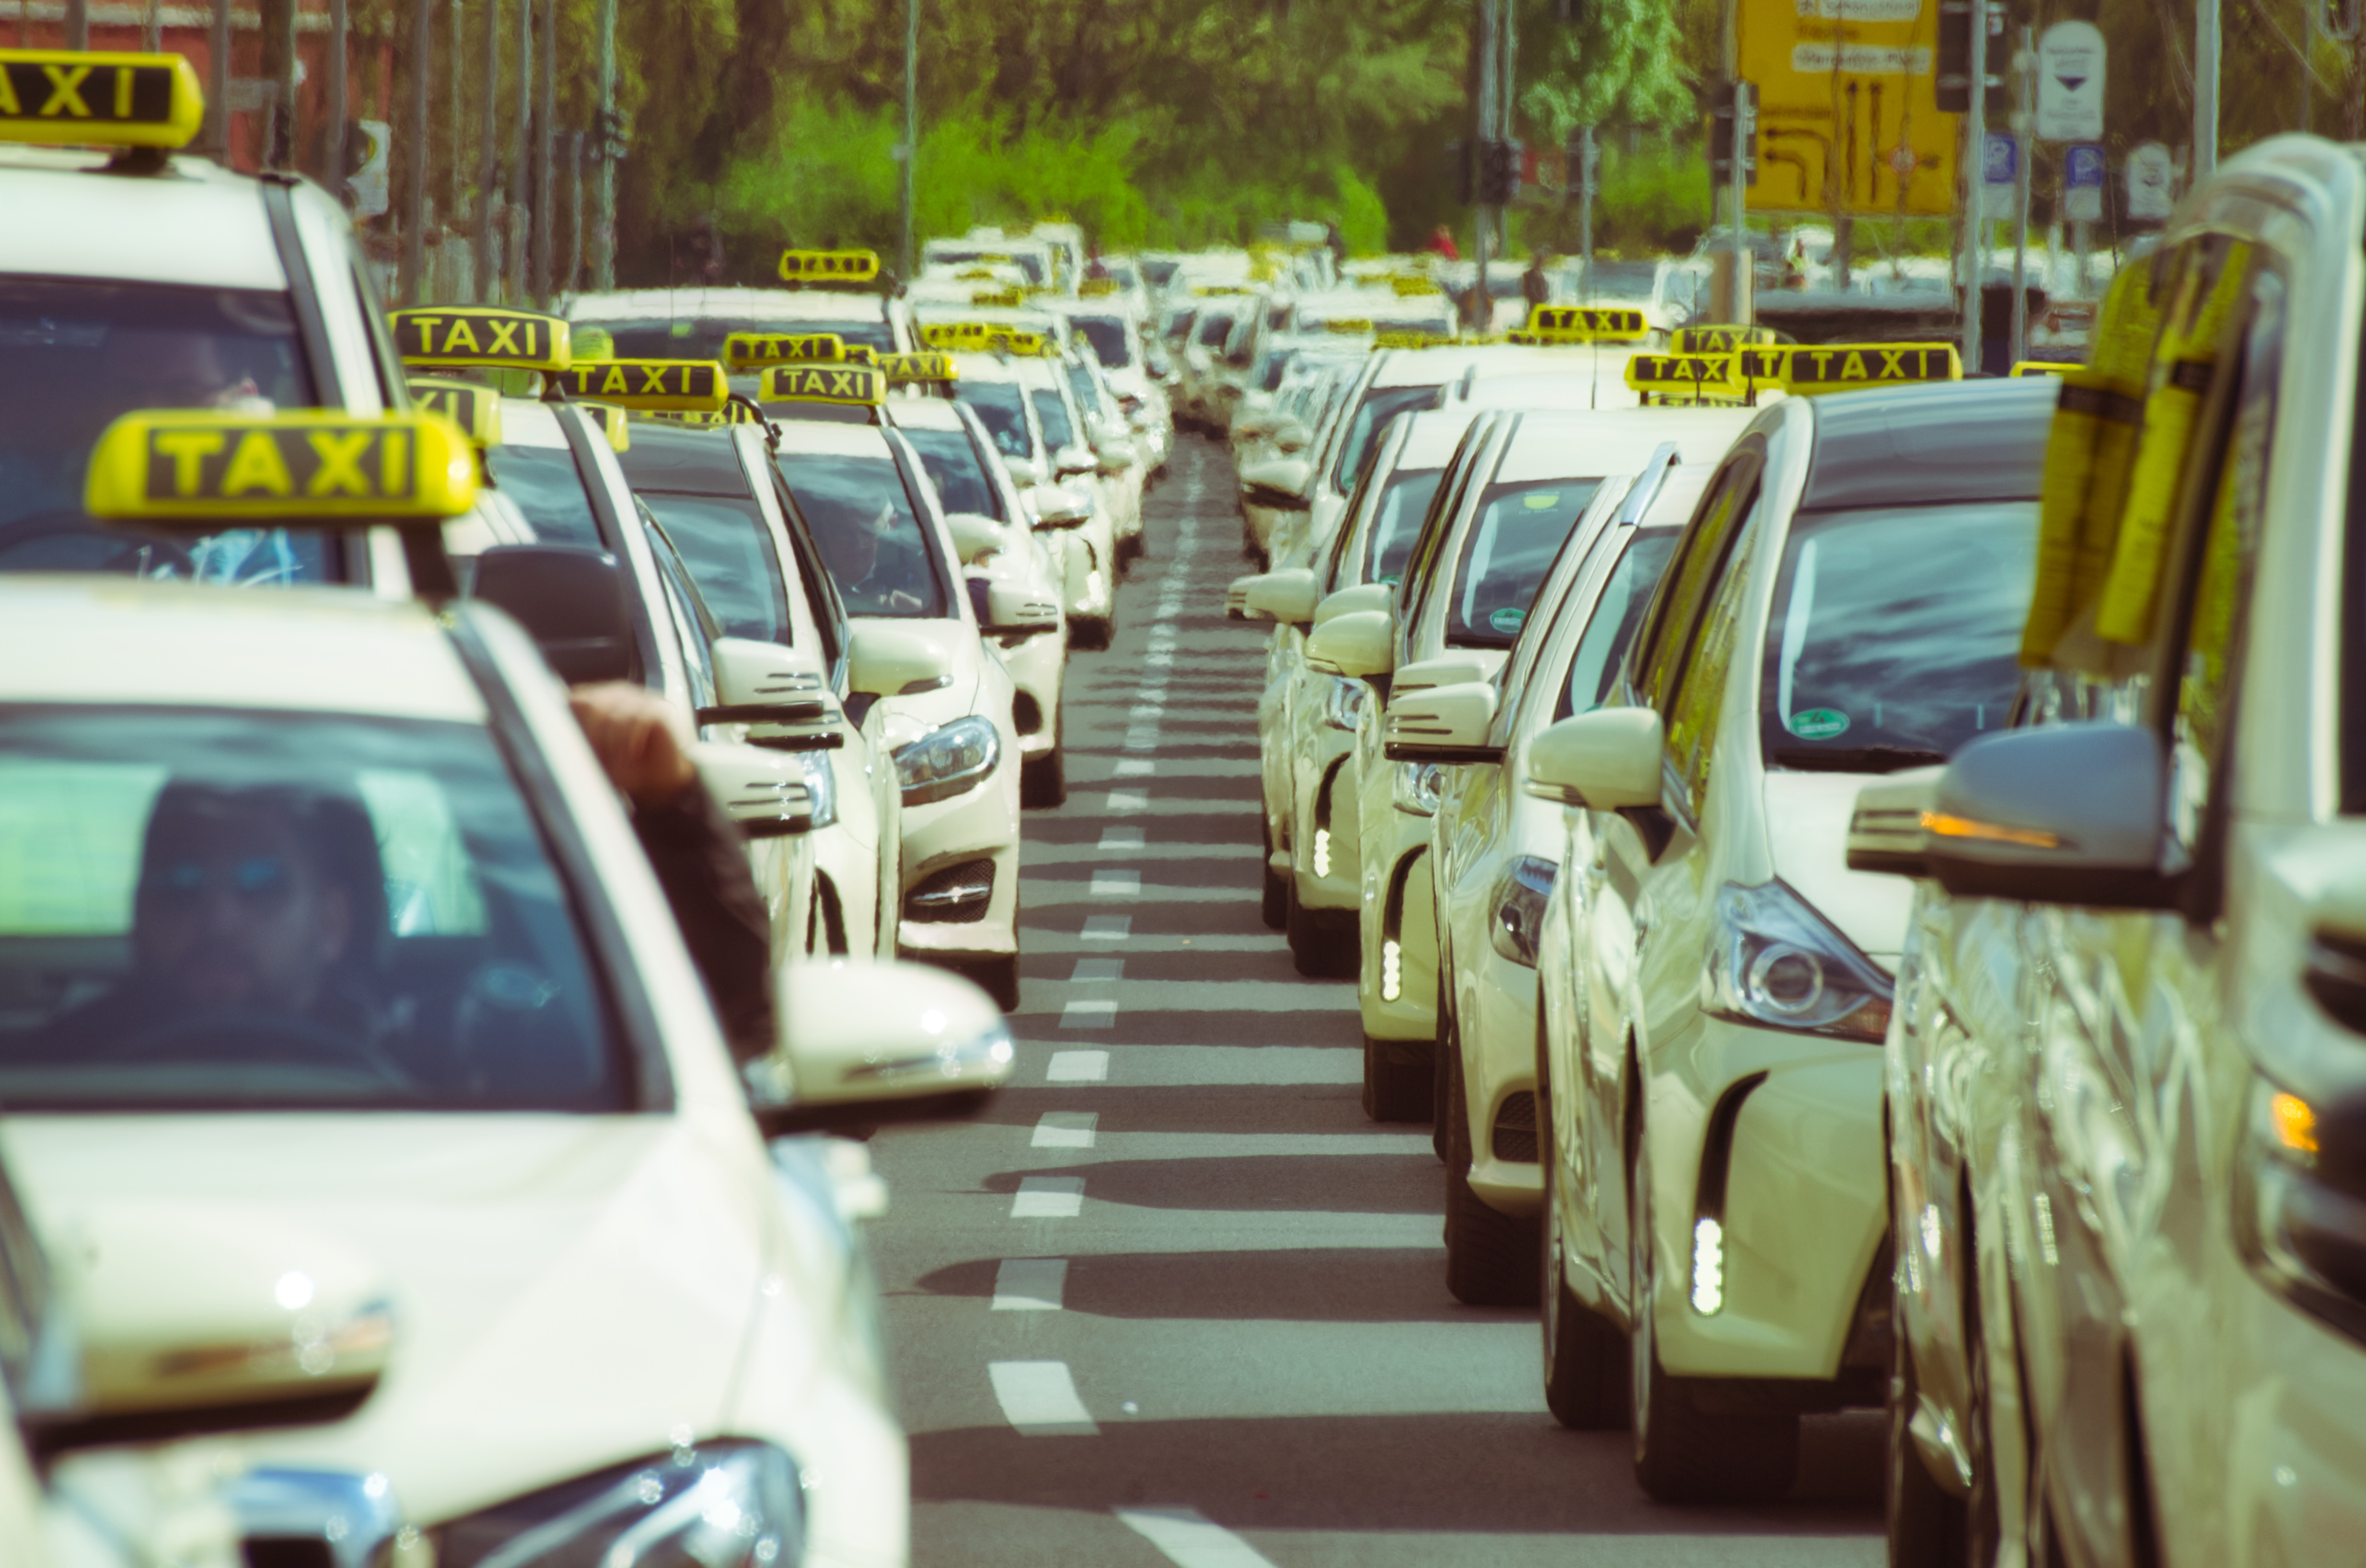 drivers on strike representing worker dissatisfaction